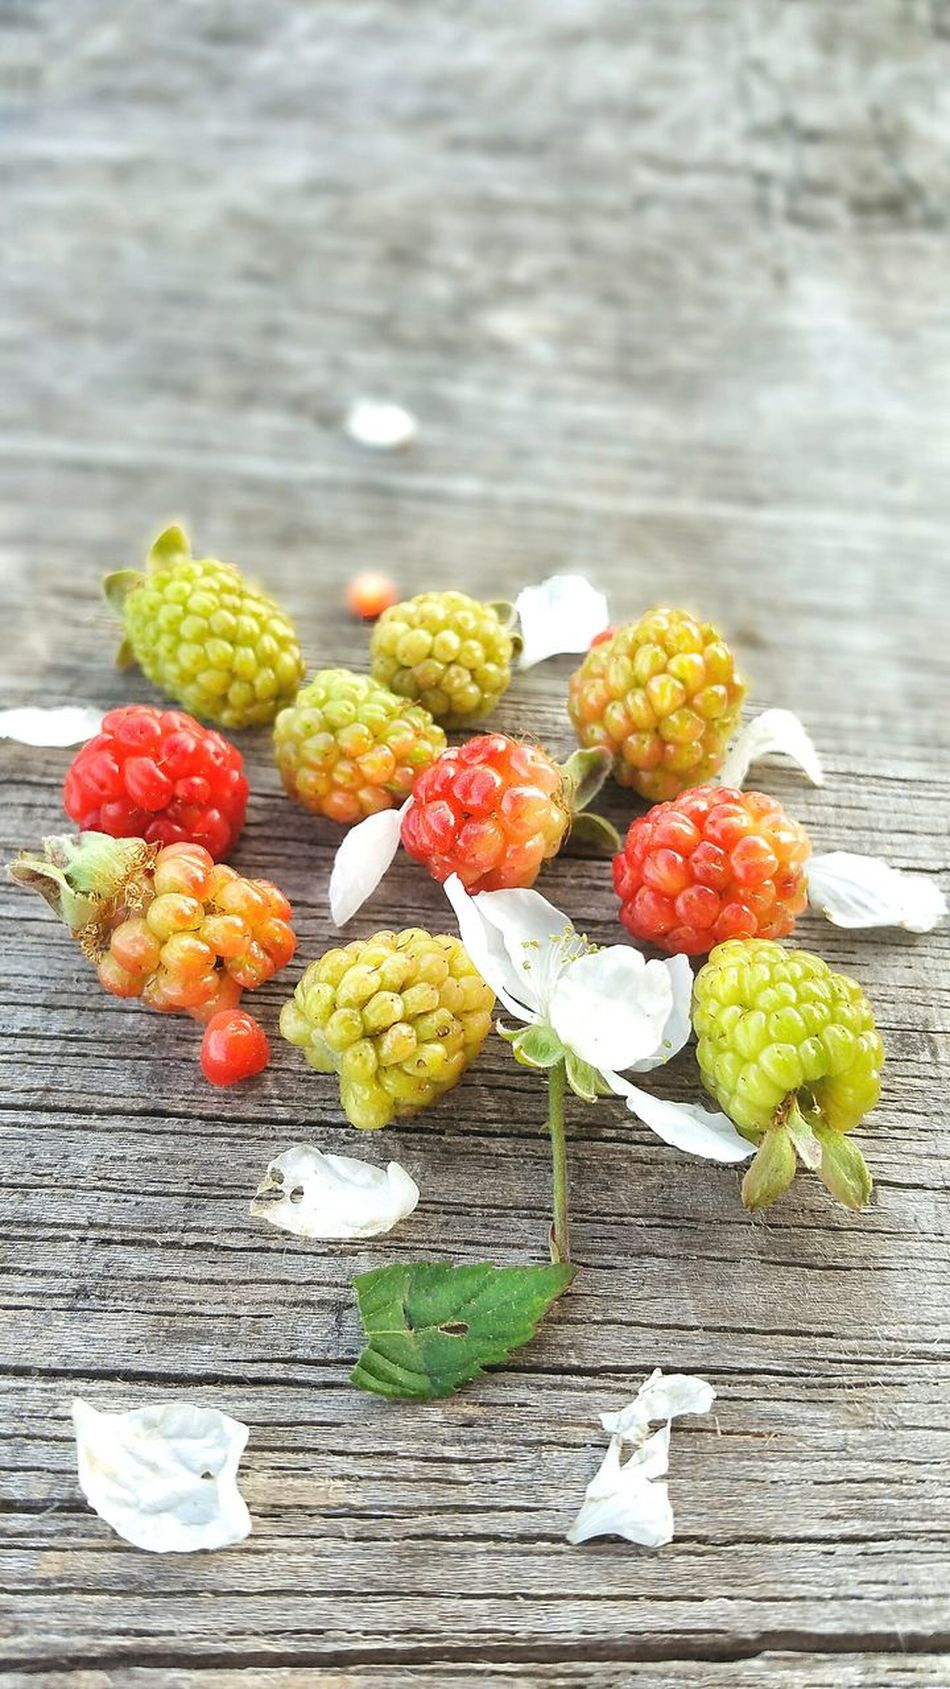 Healthy Eating Freshness No People Variation Fruit Food Food And Drink Close-up Multi Colored Outdoors Ready-to-eat Nature Day Wild Wild Berries Dew Berries Blackberry Wild Blackberries Group Bunch Unripe Weathered Wood Backgrounds Room For Text Room For Copy